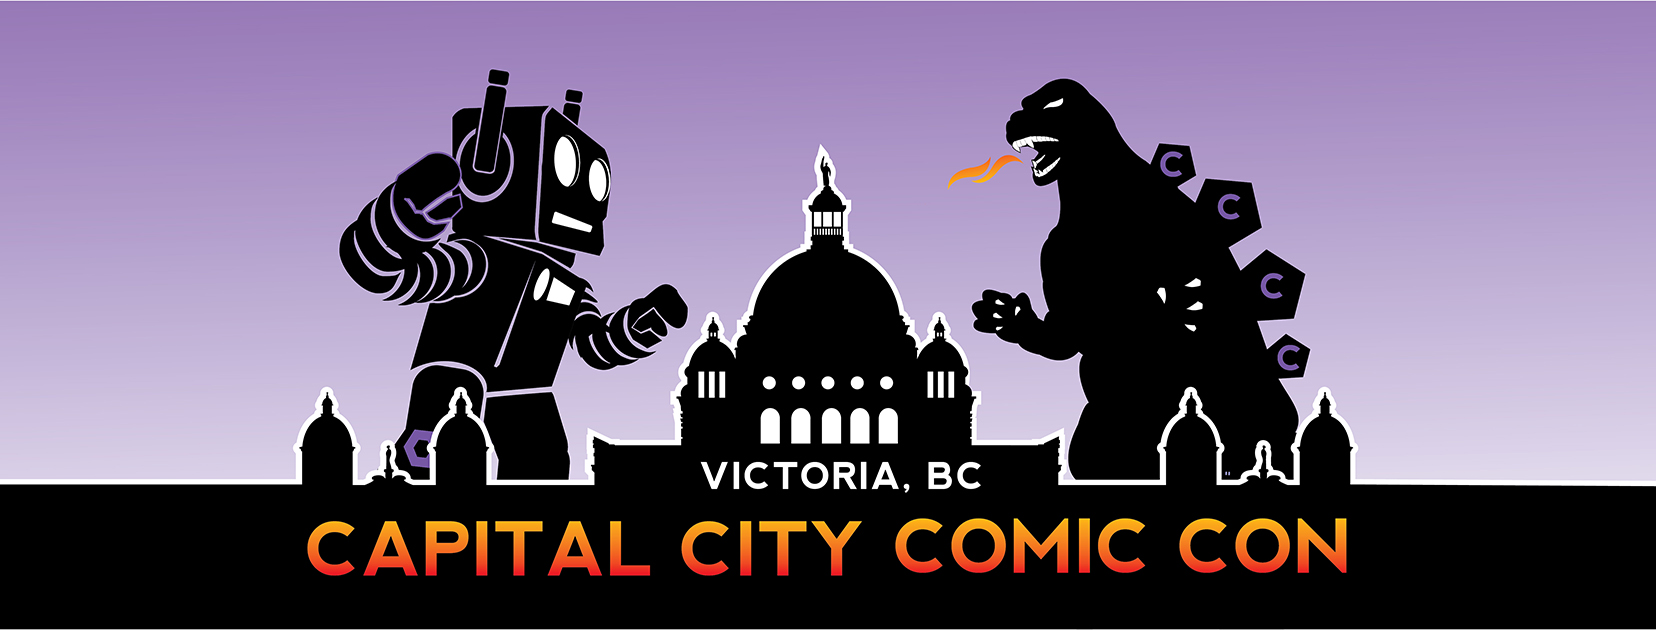 Capital City Comic Con 2019